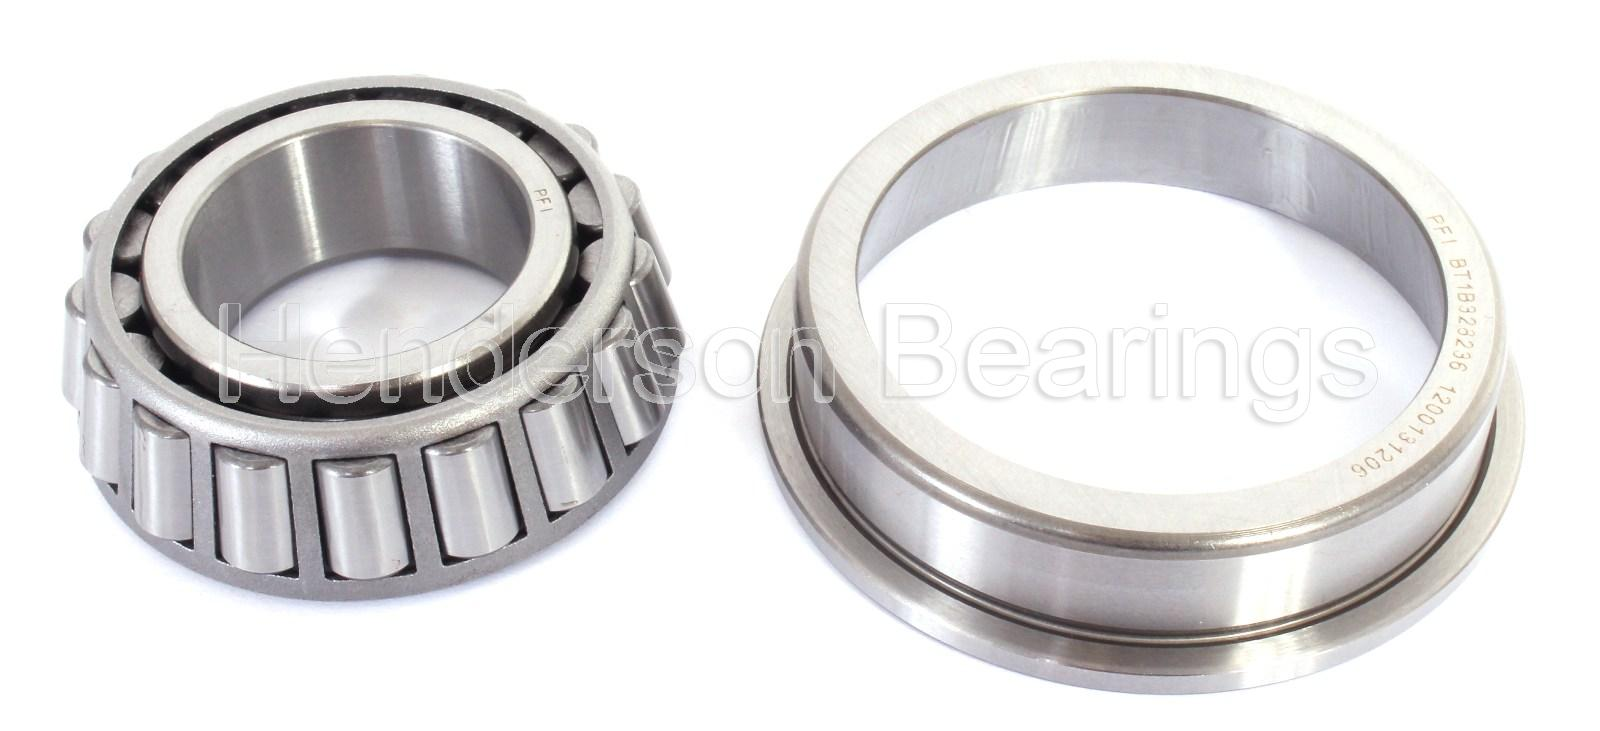 BT1B328236 Gearbox Output Shaft Bearing Compatible With VW PFI Audi,Skoda